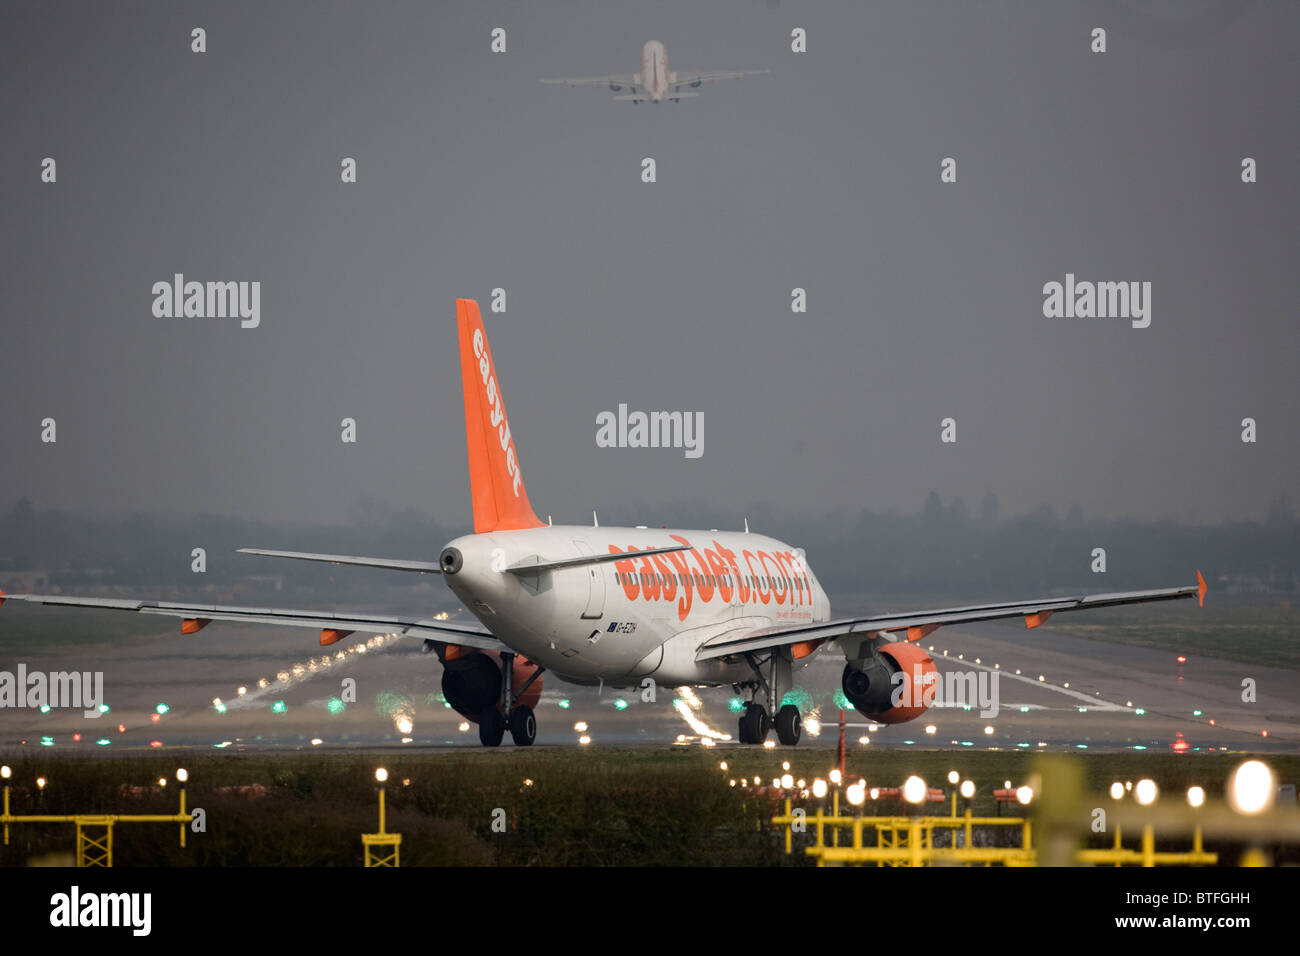 A EasyJet A319 - 111 prepares to take off from Gatwick Airport. Picture by James BoardmanStock Photo